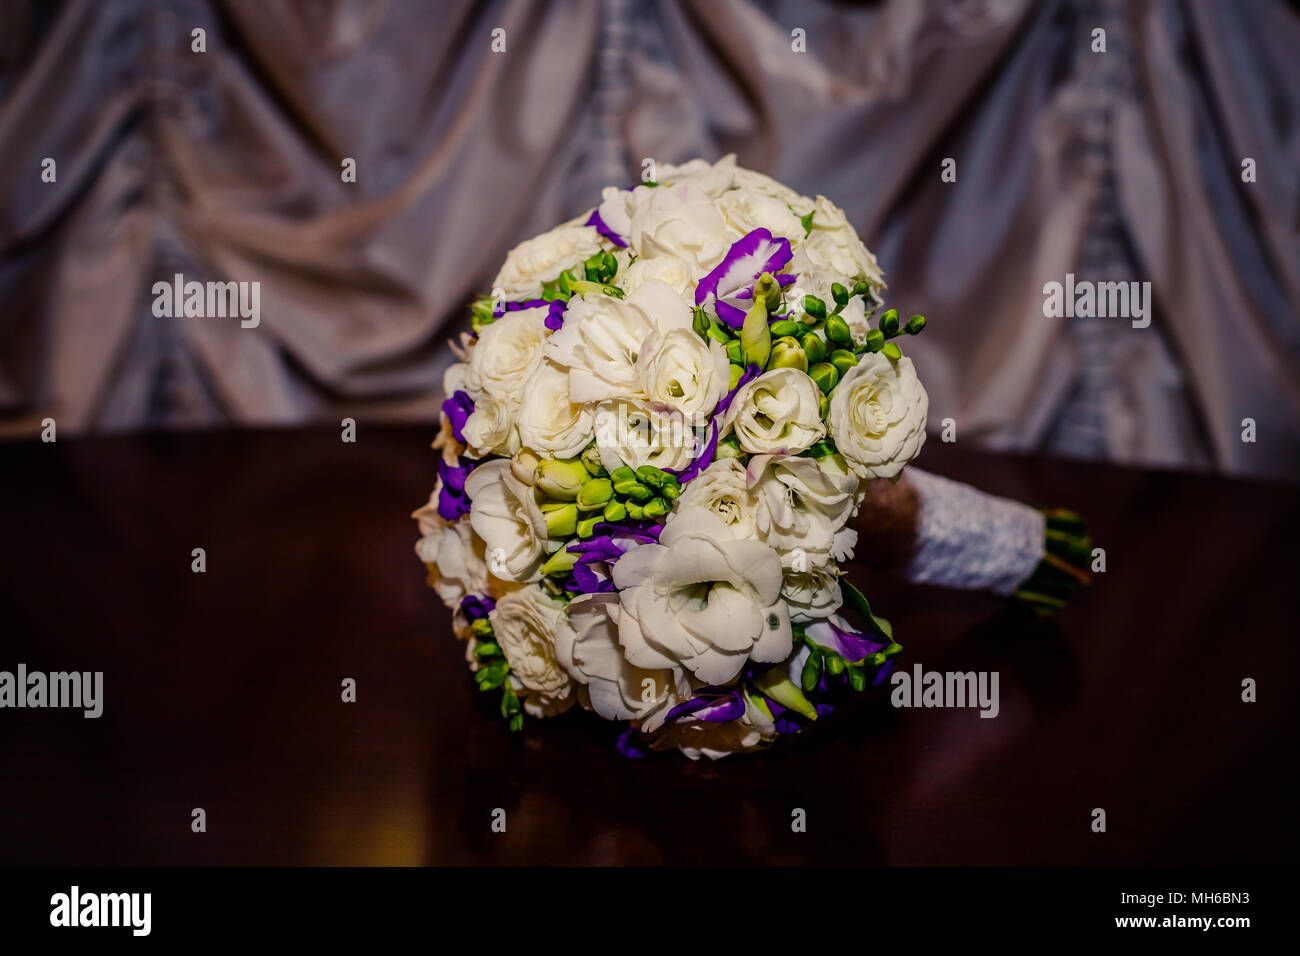 Beautiful bouquet with freesia flowers wedding flowers bouquet and beautiful bouquet with freesia flowers wedding flowers bouquet and eustomaisolated on wooden tablesianthus flowersviolet and white izmirmasajfo